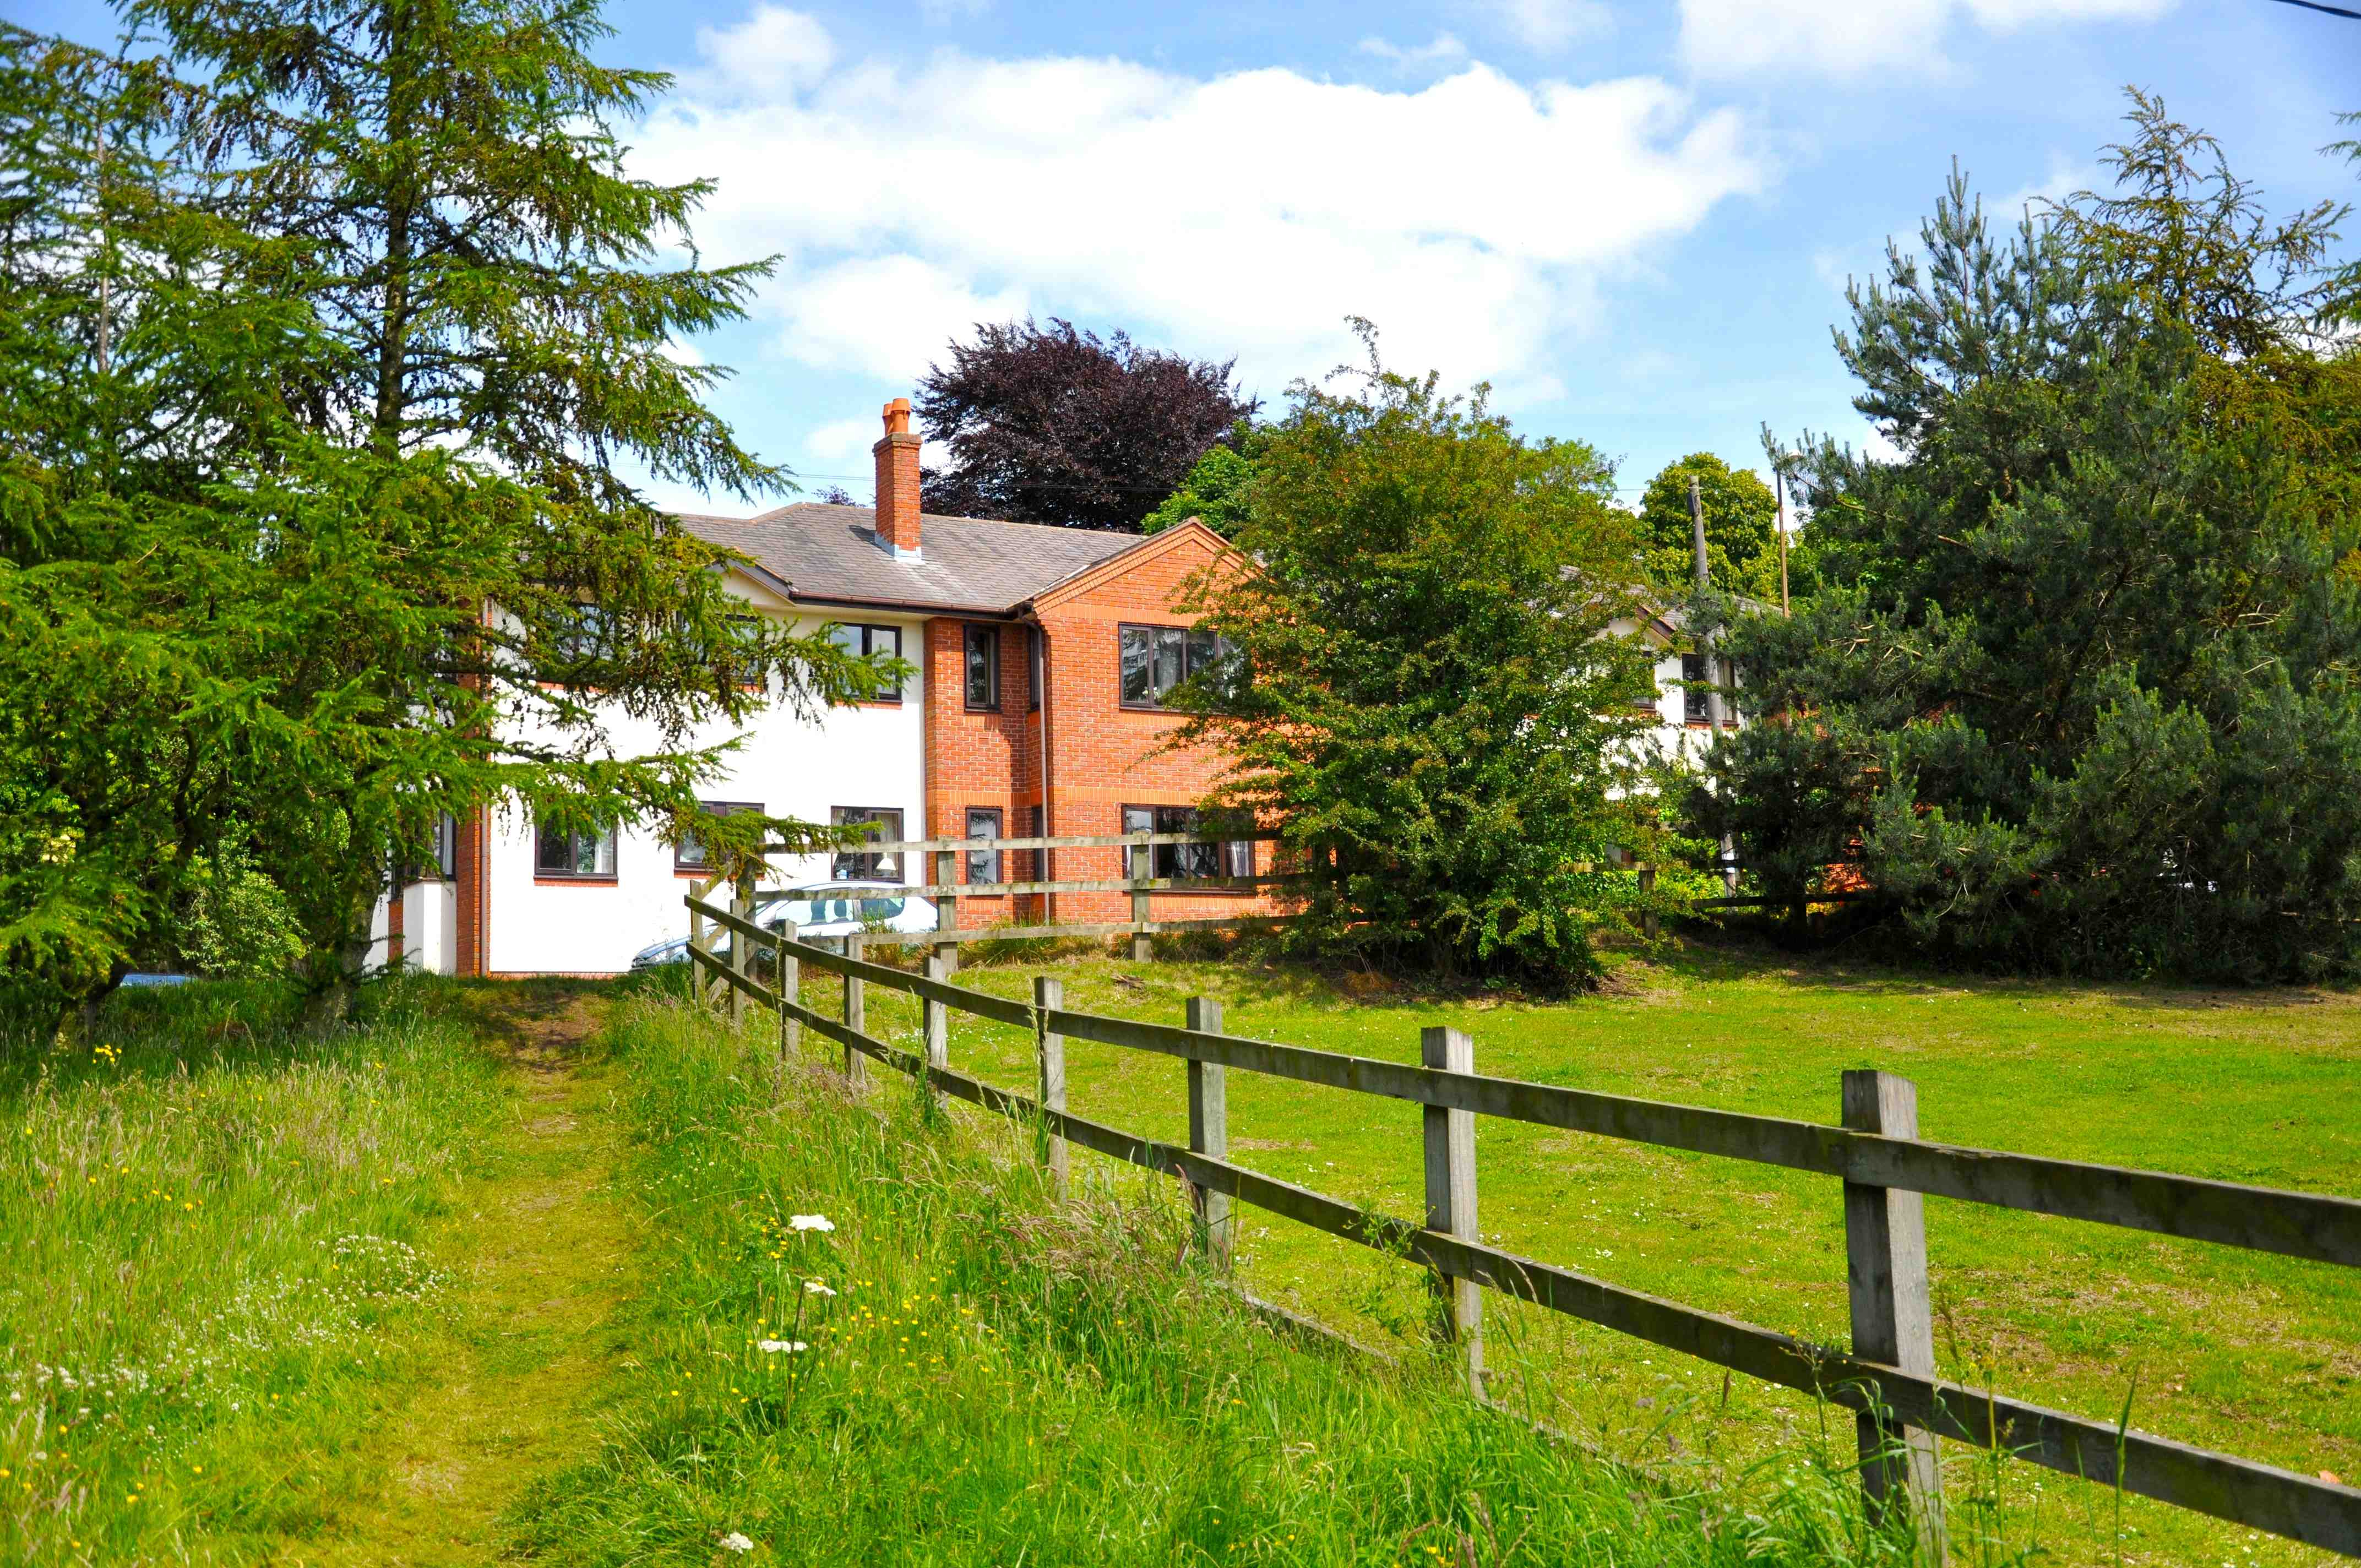 sable cottage nursing residential home rh sablecottage com hopton cottage care home cottage care home abbotsford